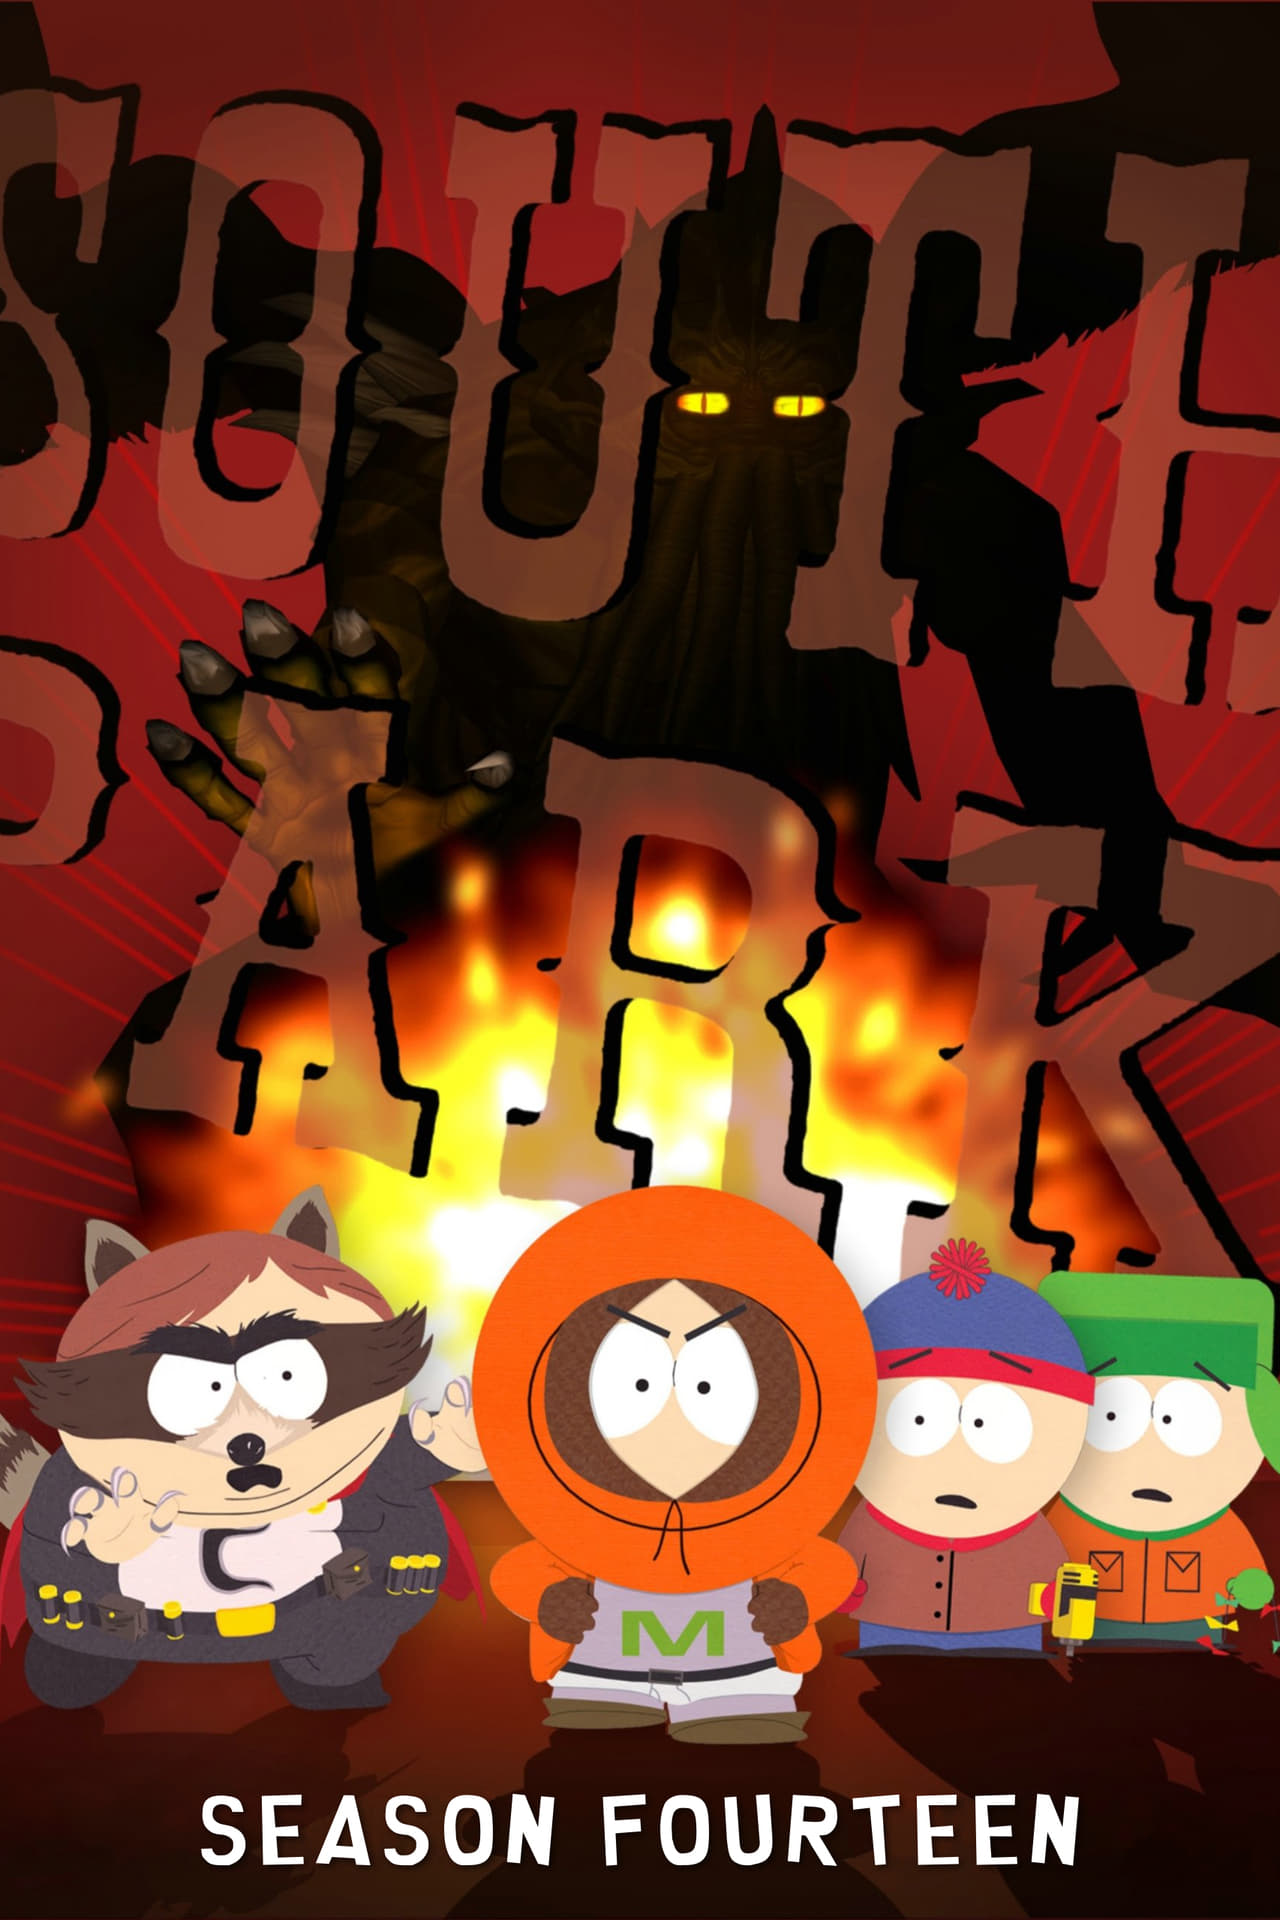 Putlocker South Park Season 14 (2010)